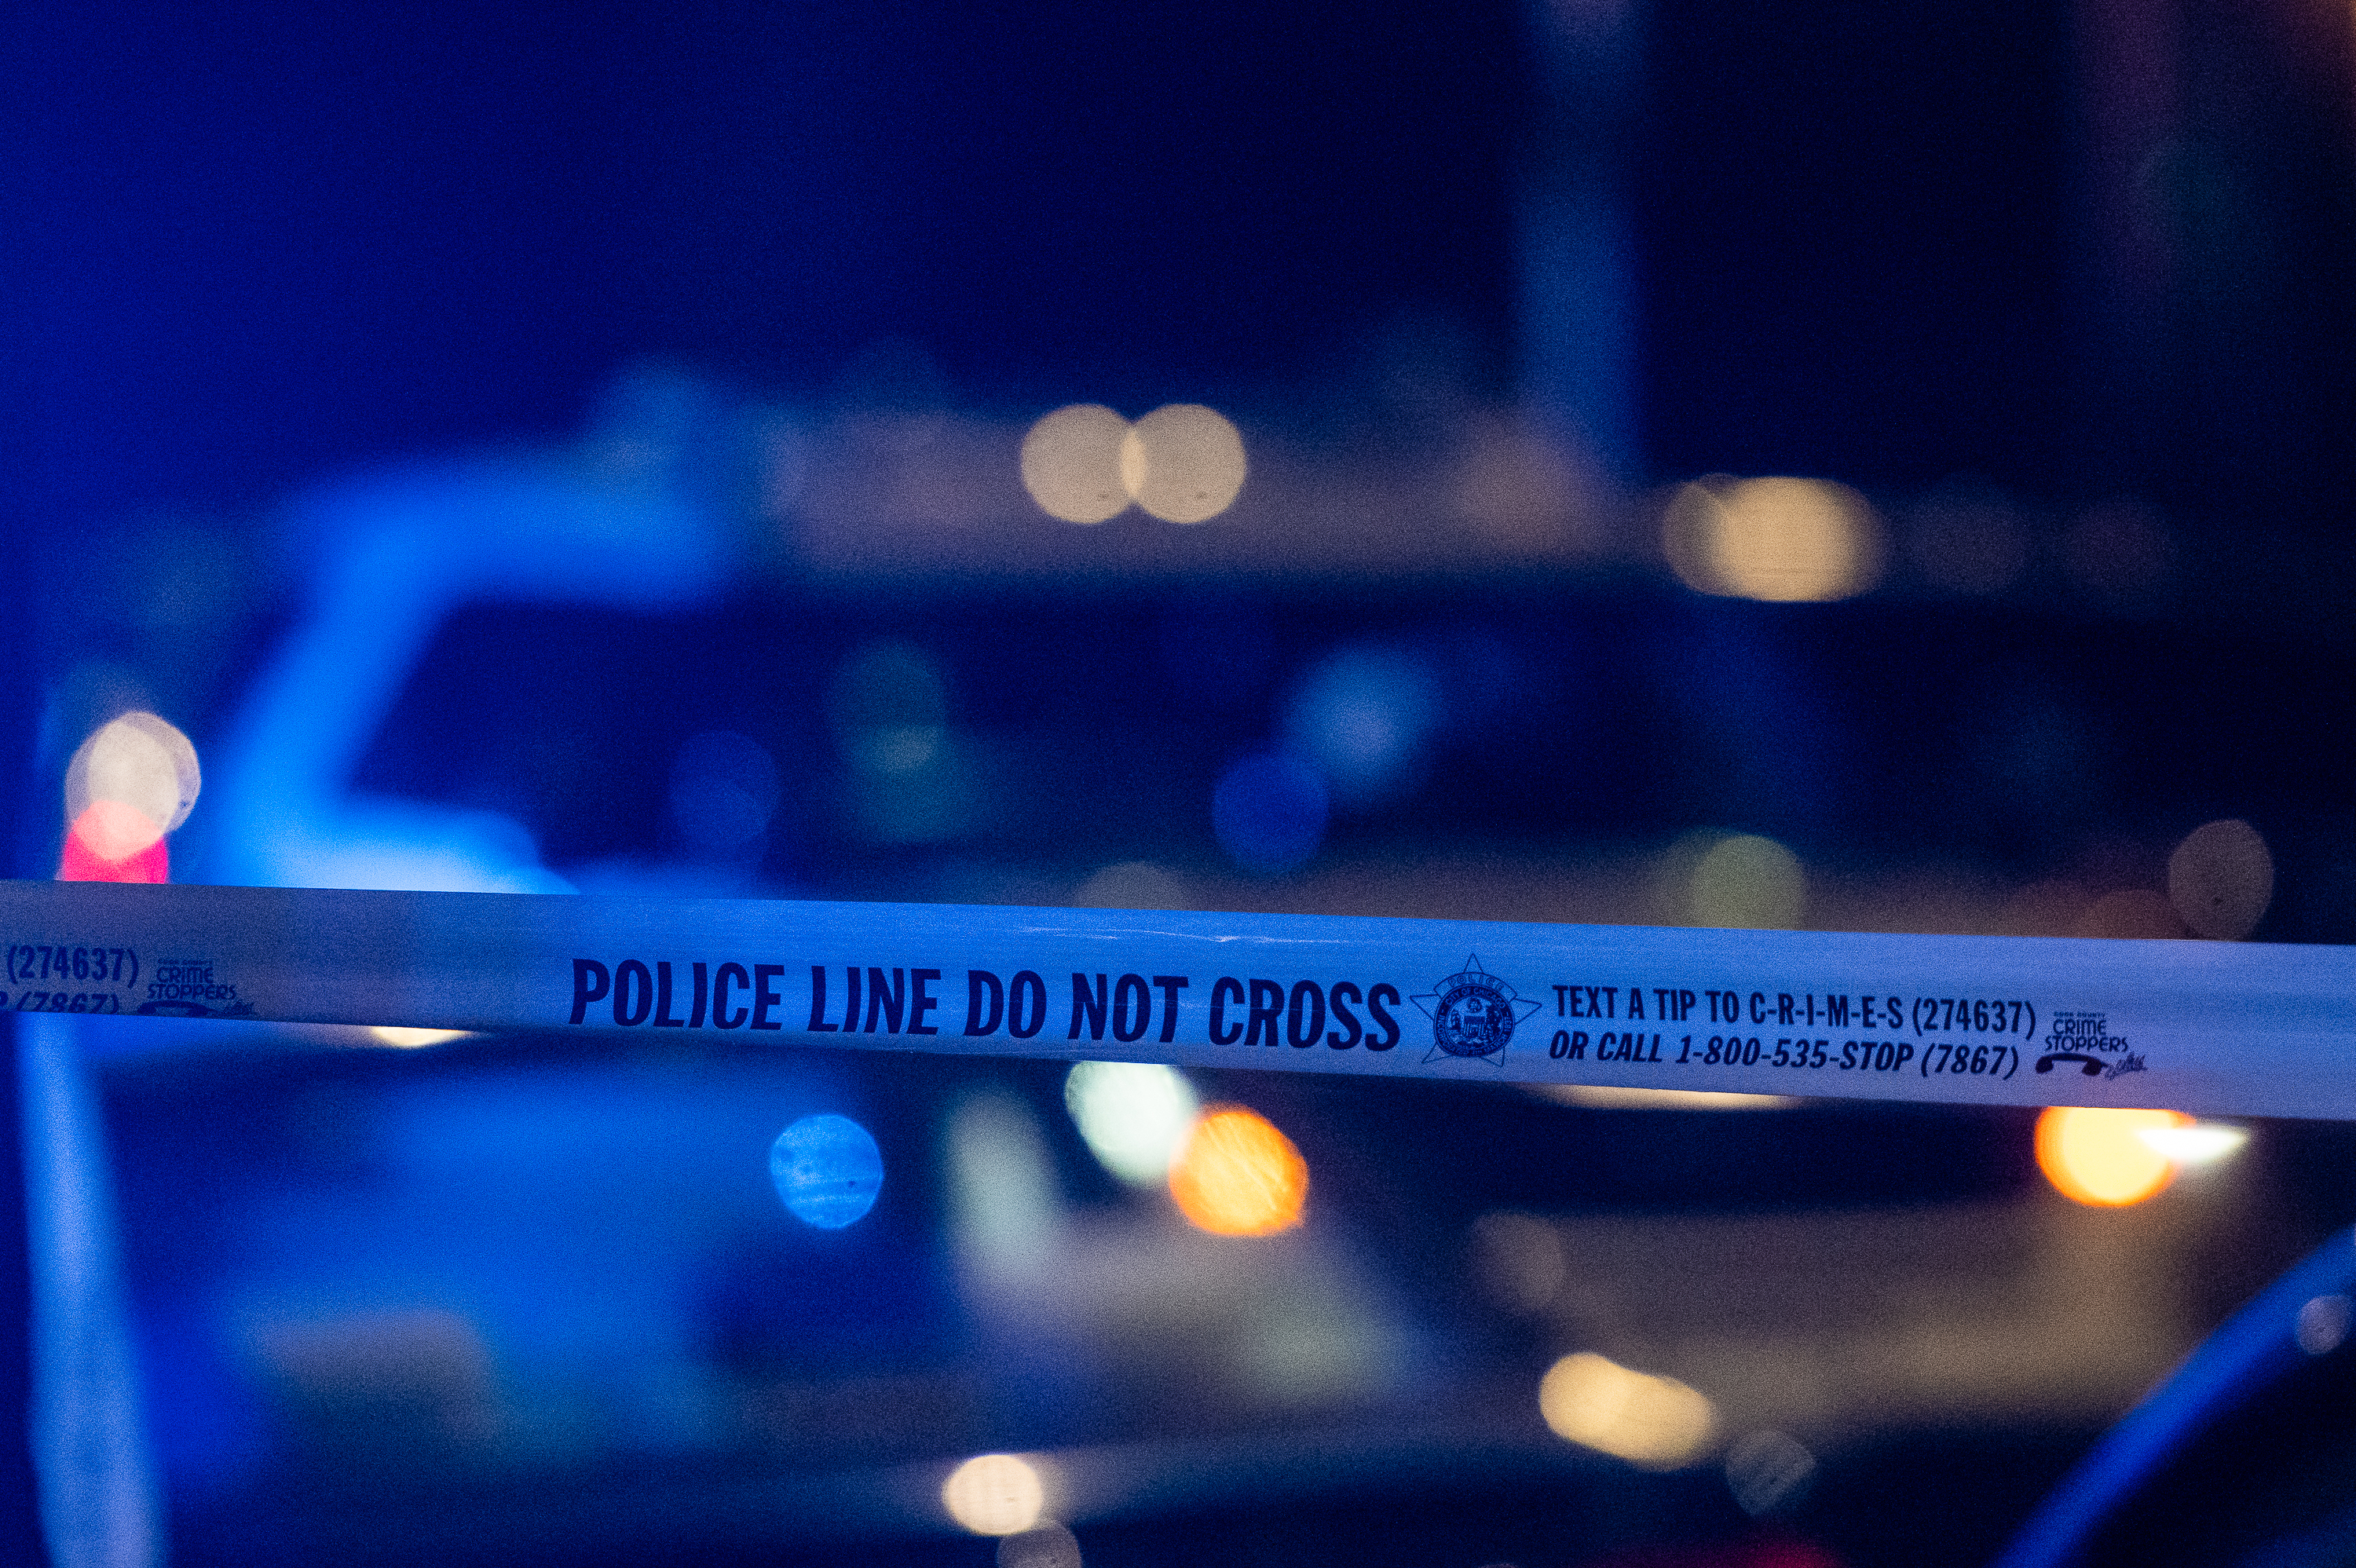 Two Chicago police officers were injured when their squad car crashed into a park gate July 6, 2020, in the 3400 block of East 87th Street.